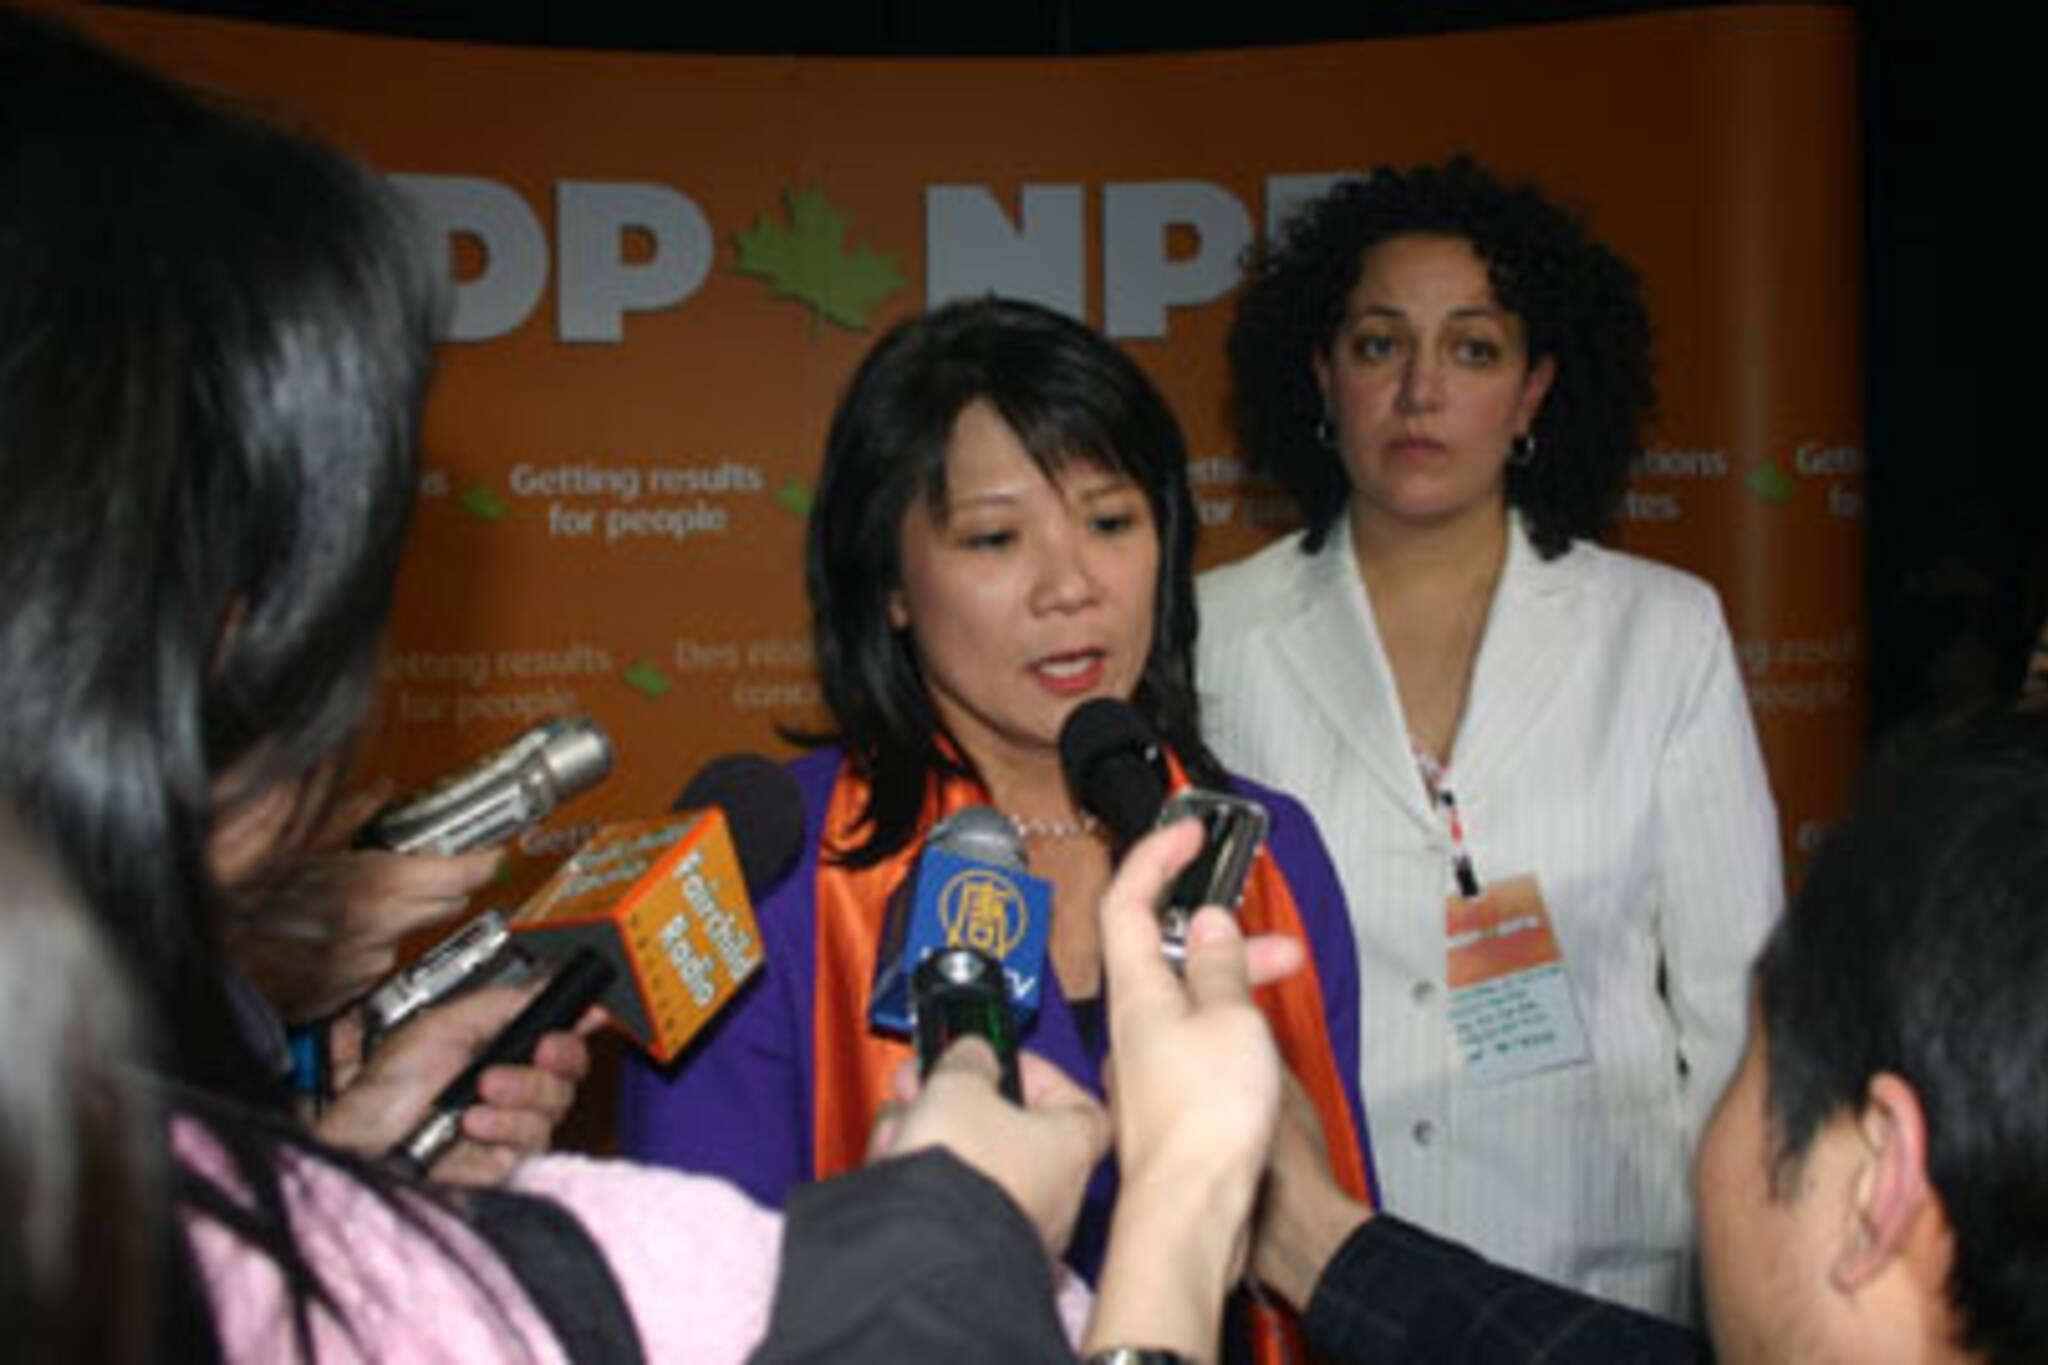 Newly minted MP Olivia Chow jumps into a press scrum after her victory was announced